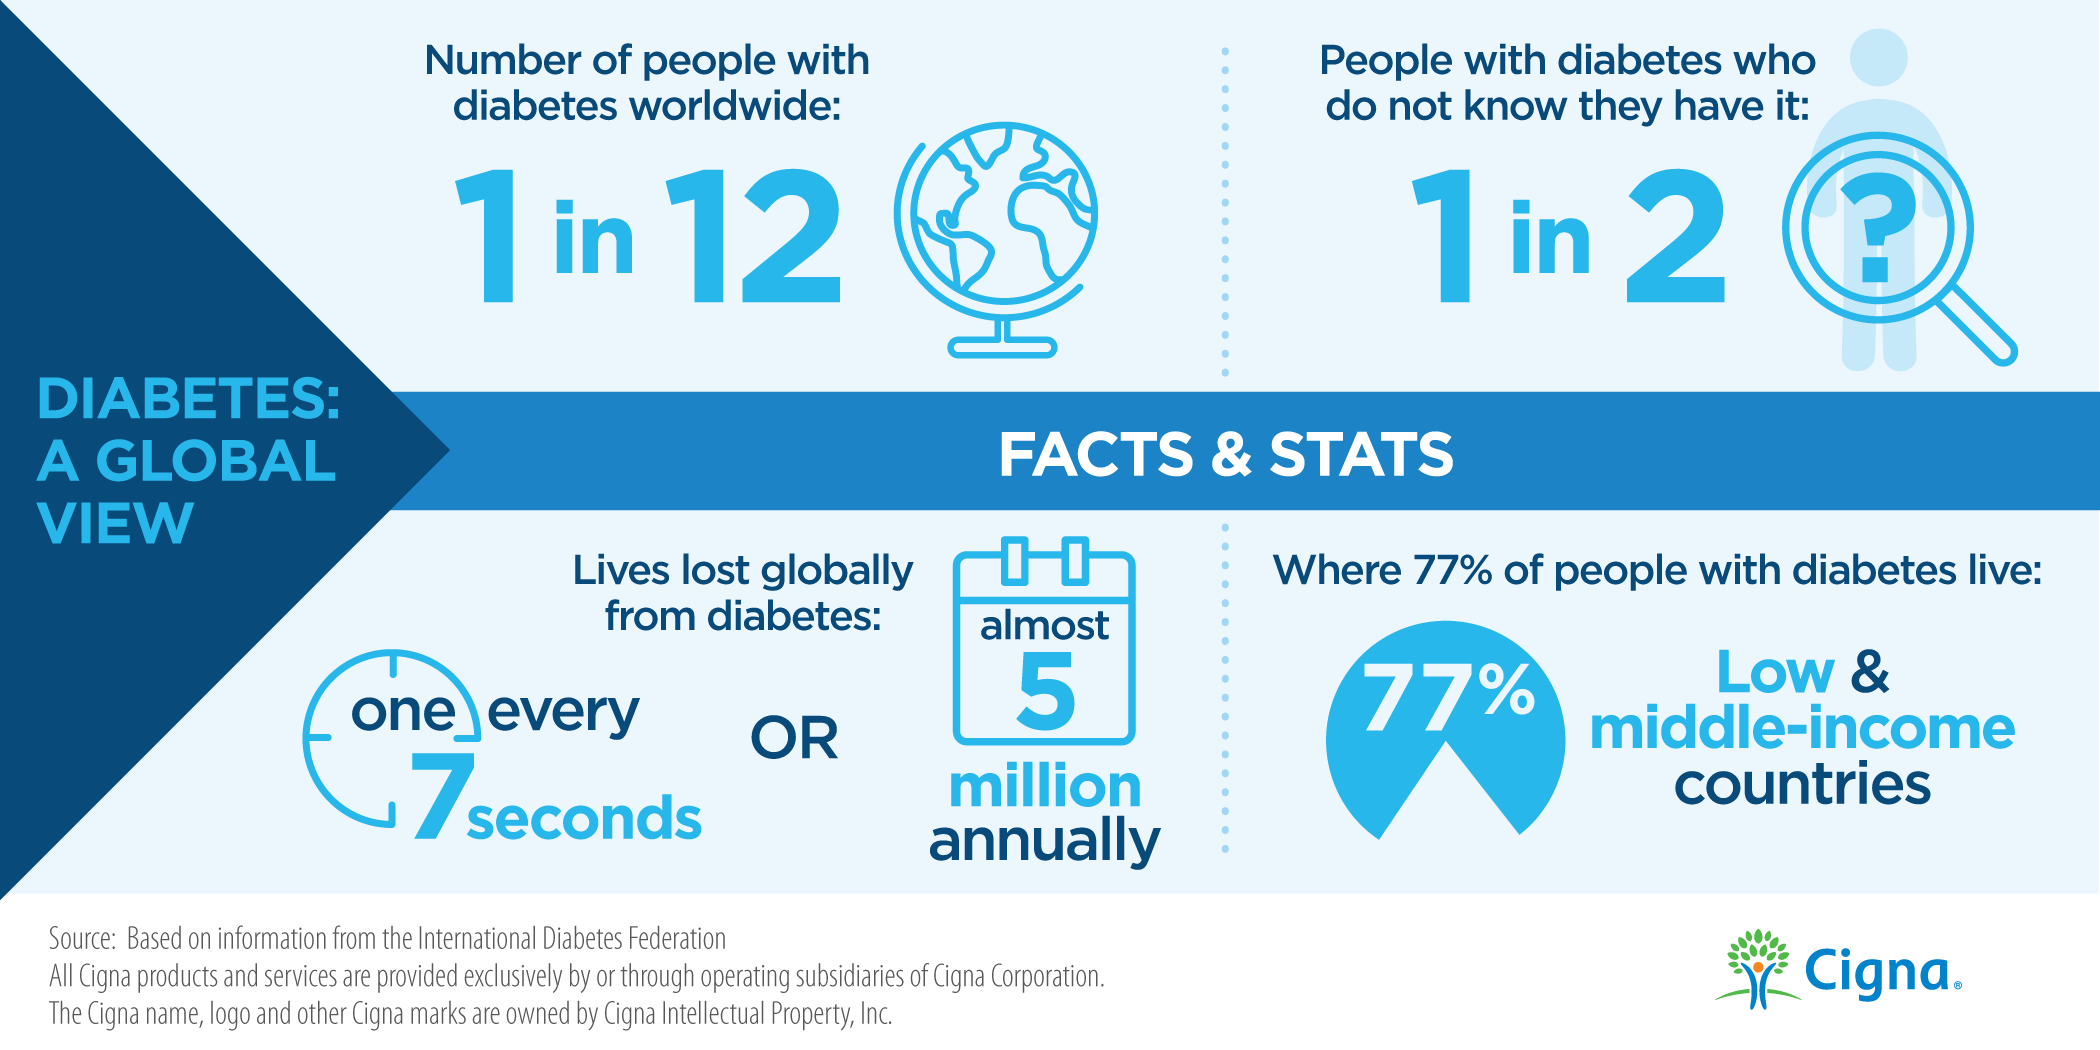 Diabetes Facts & Stats